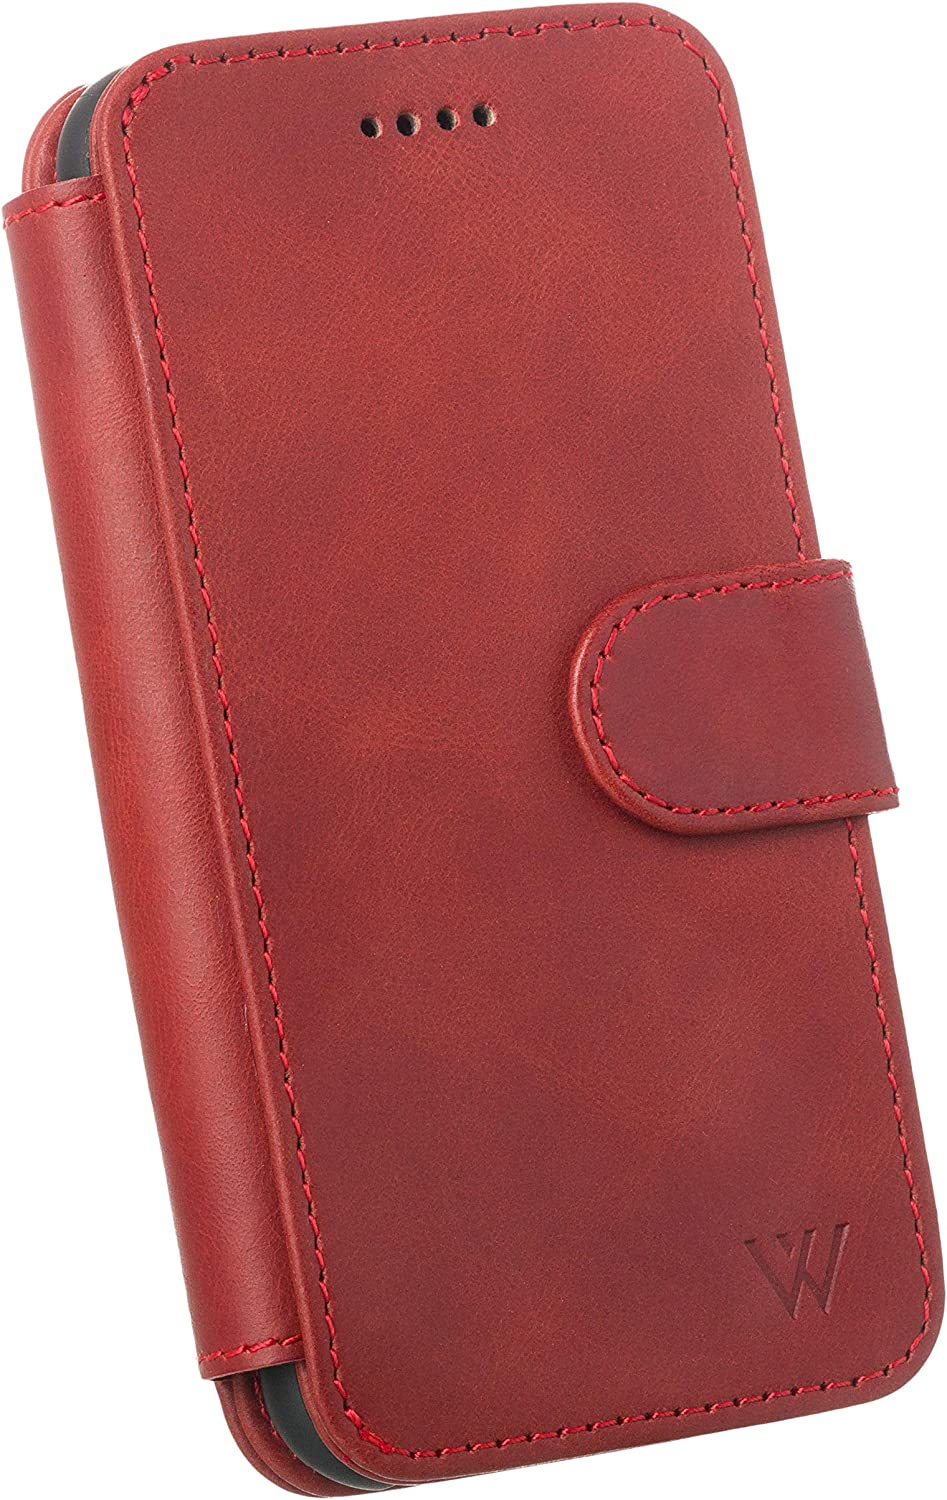 Wilken iPhone 7/8+ Plus Leather Wallet with Detachable Phone Case | Wireless Charging Compatible with iPhone 8 Plus | Top Grain Genuine Leather | Red